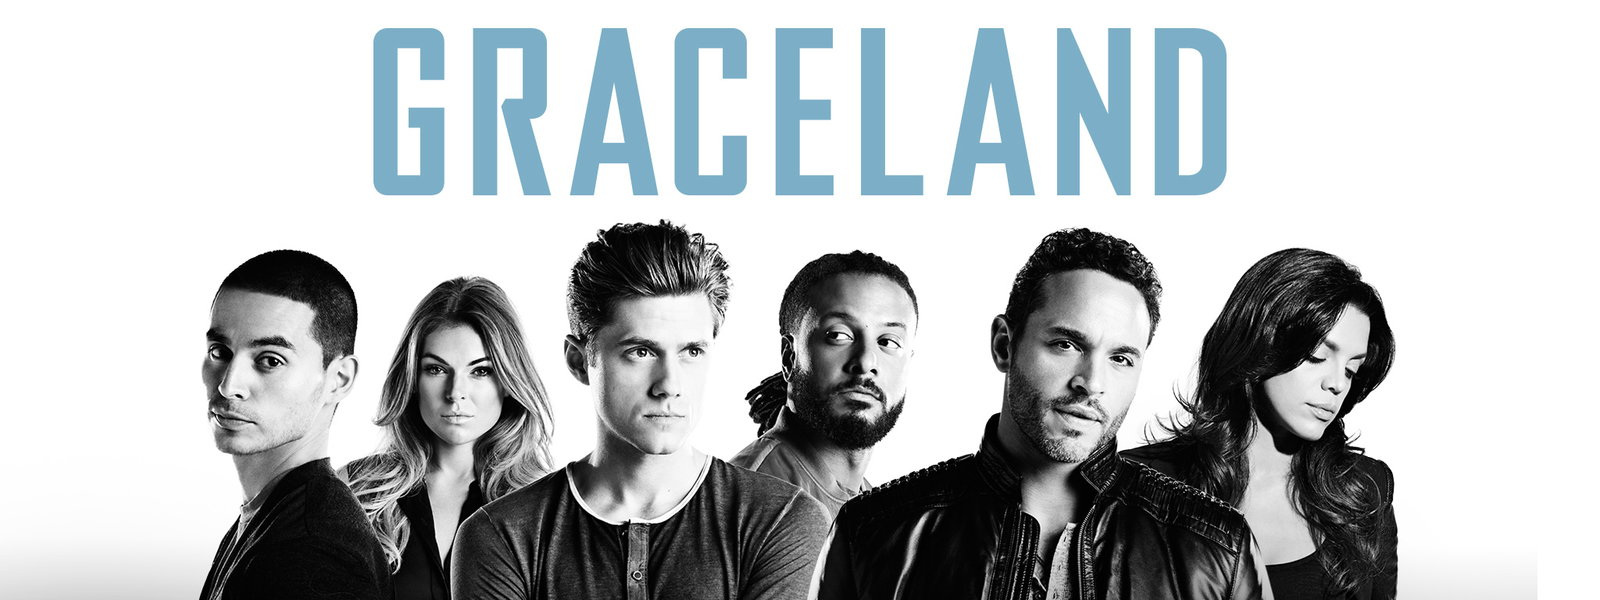 Watch Graceland Online | Stream on Hulu